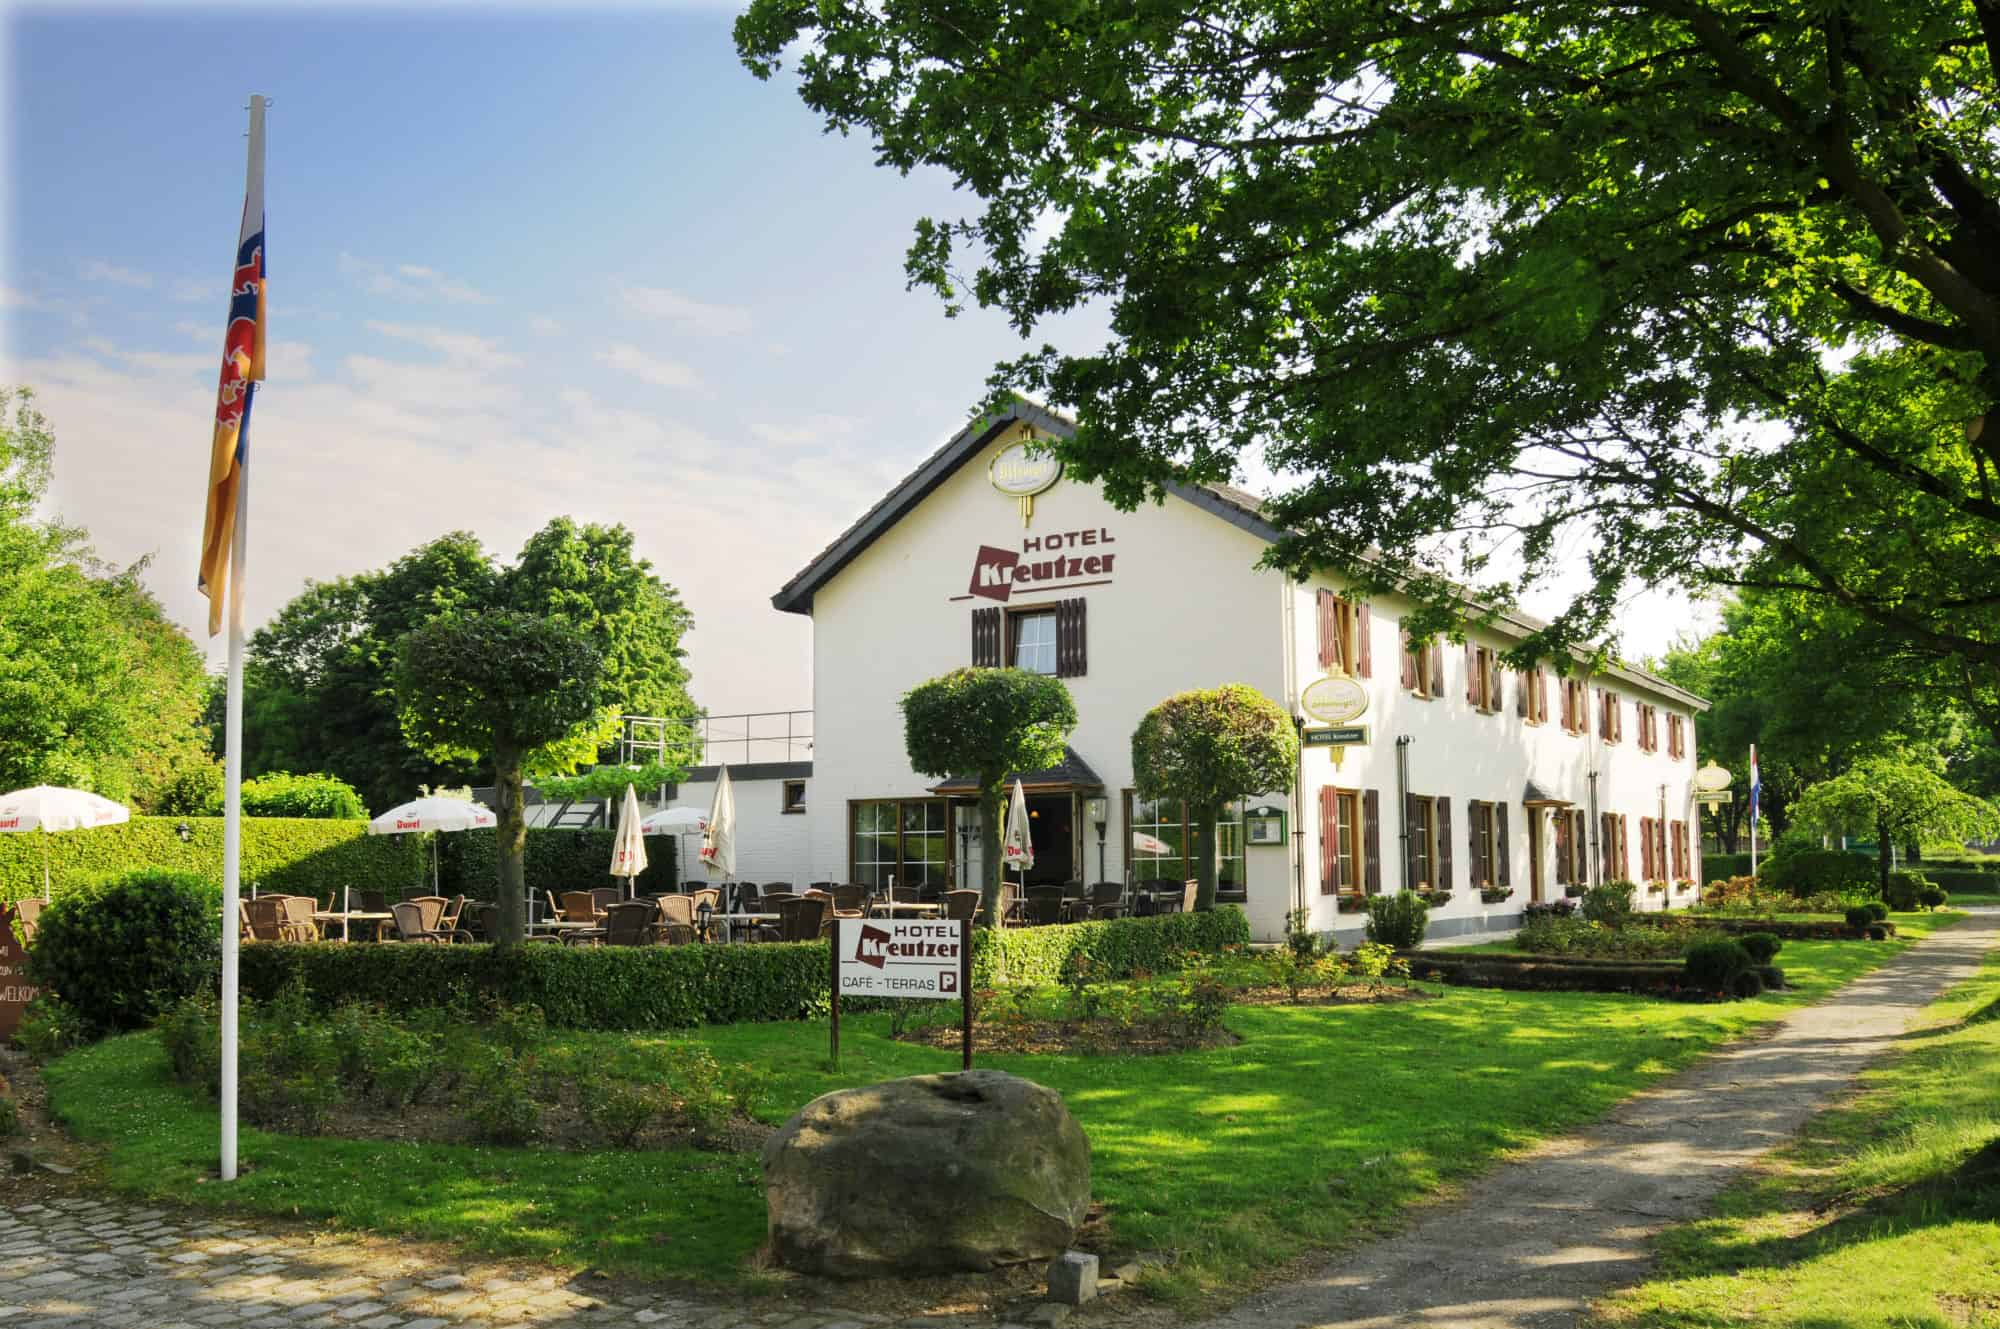 Hotel Kreutzer in Heijenrath, Limburg